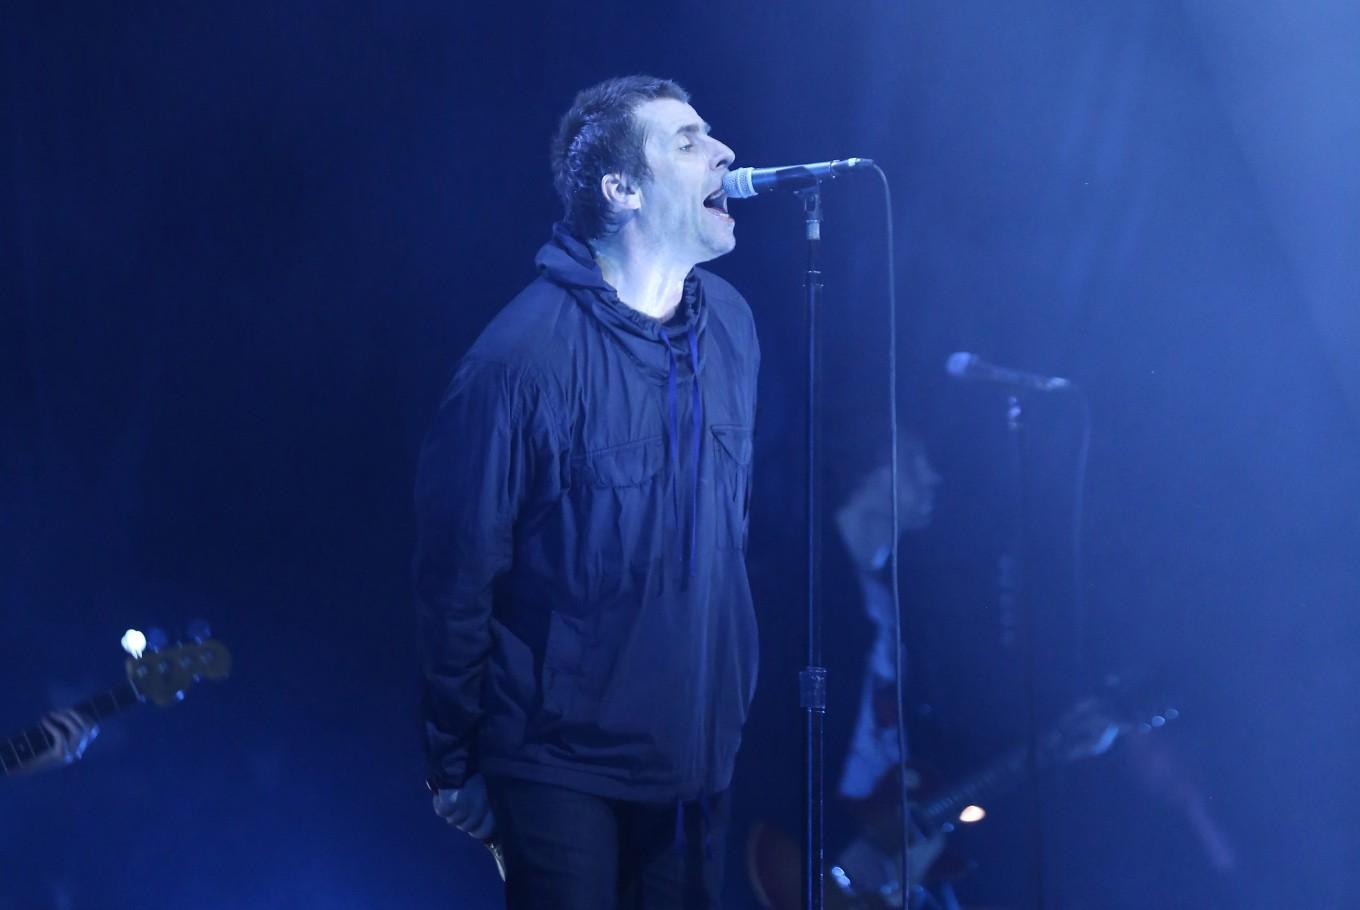 Liam Gallagher teases first single from new solo record